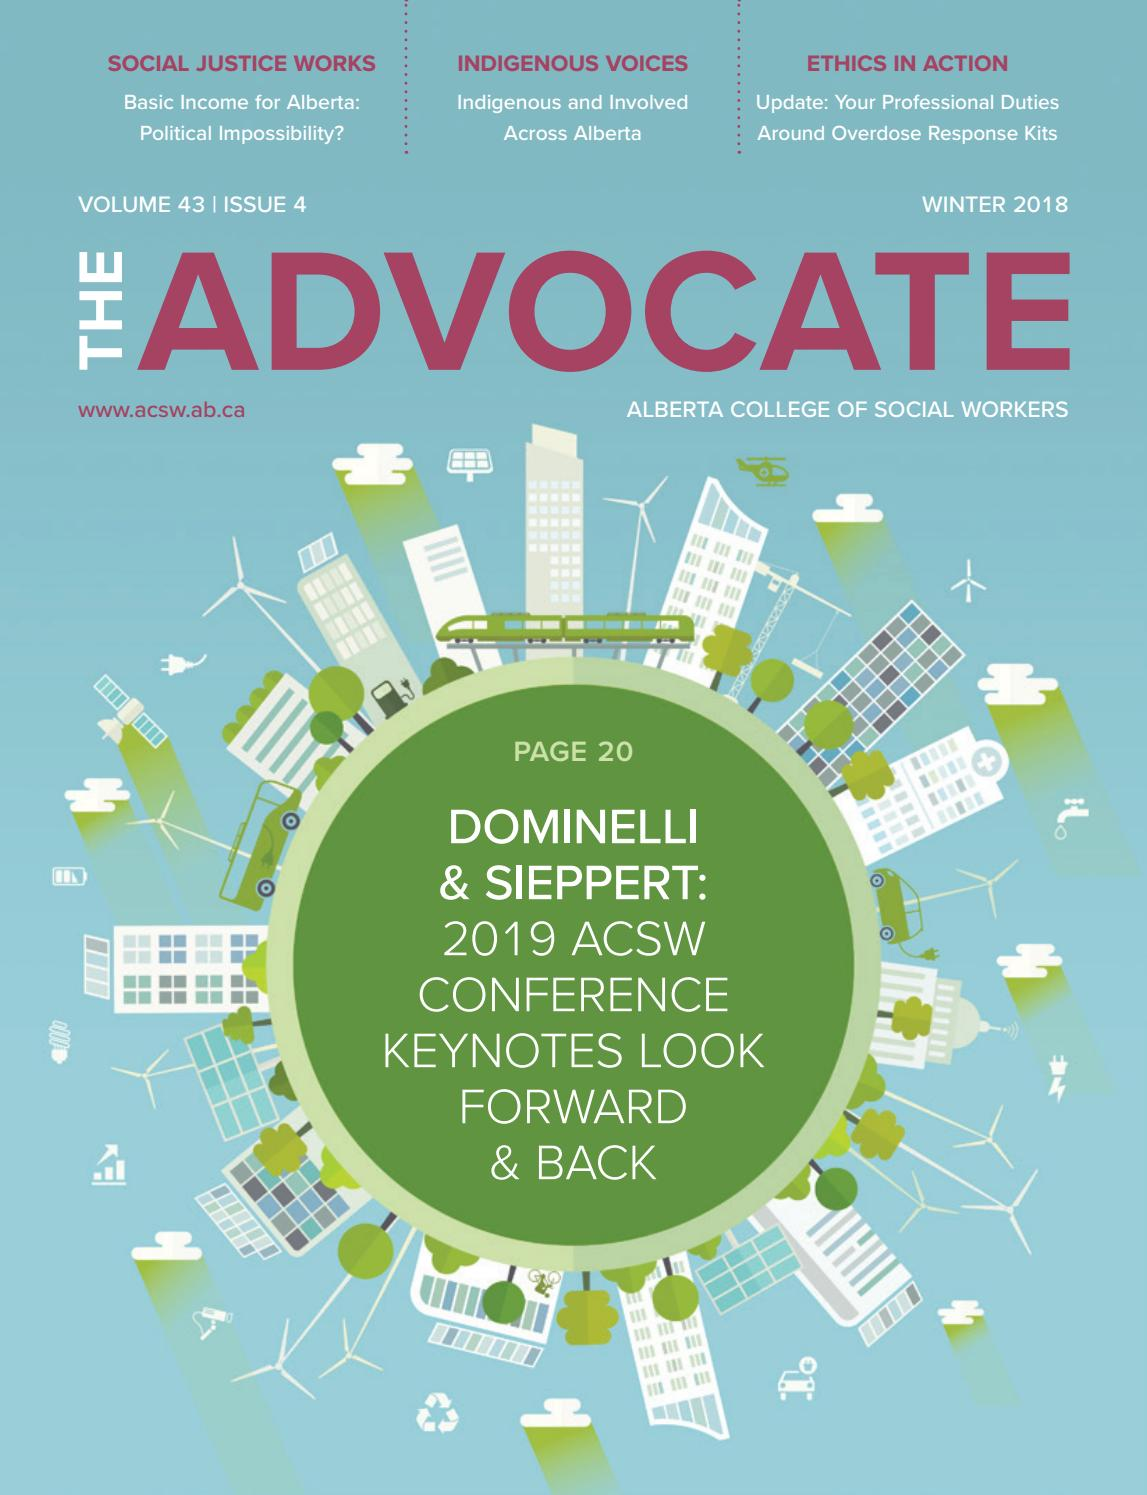 The Advocate - Winter 2018 by ACSW - Issuu